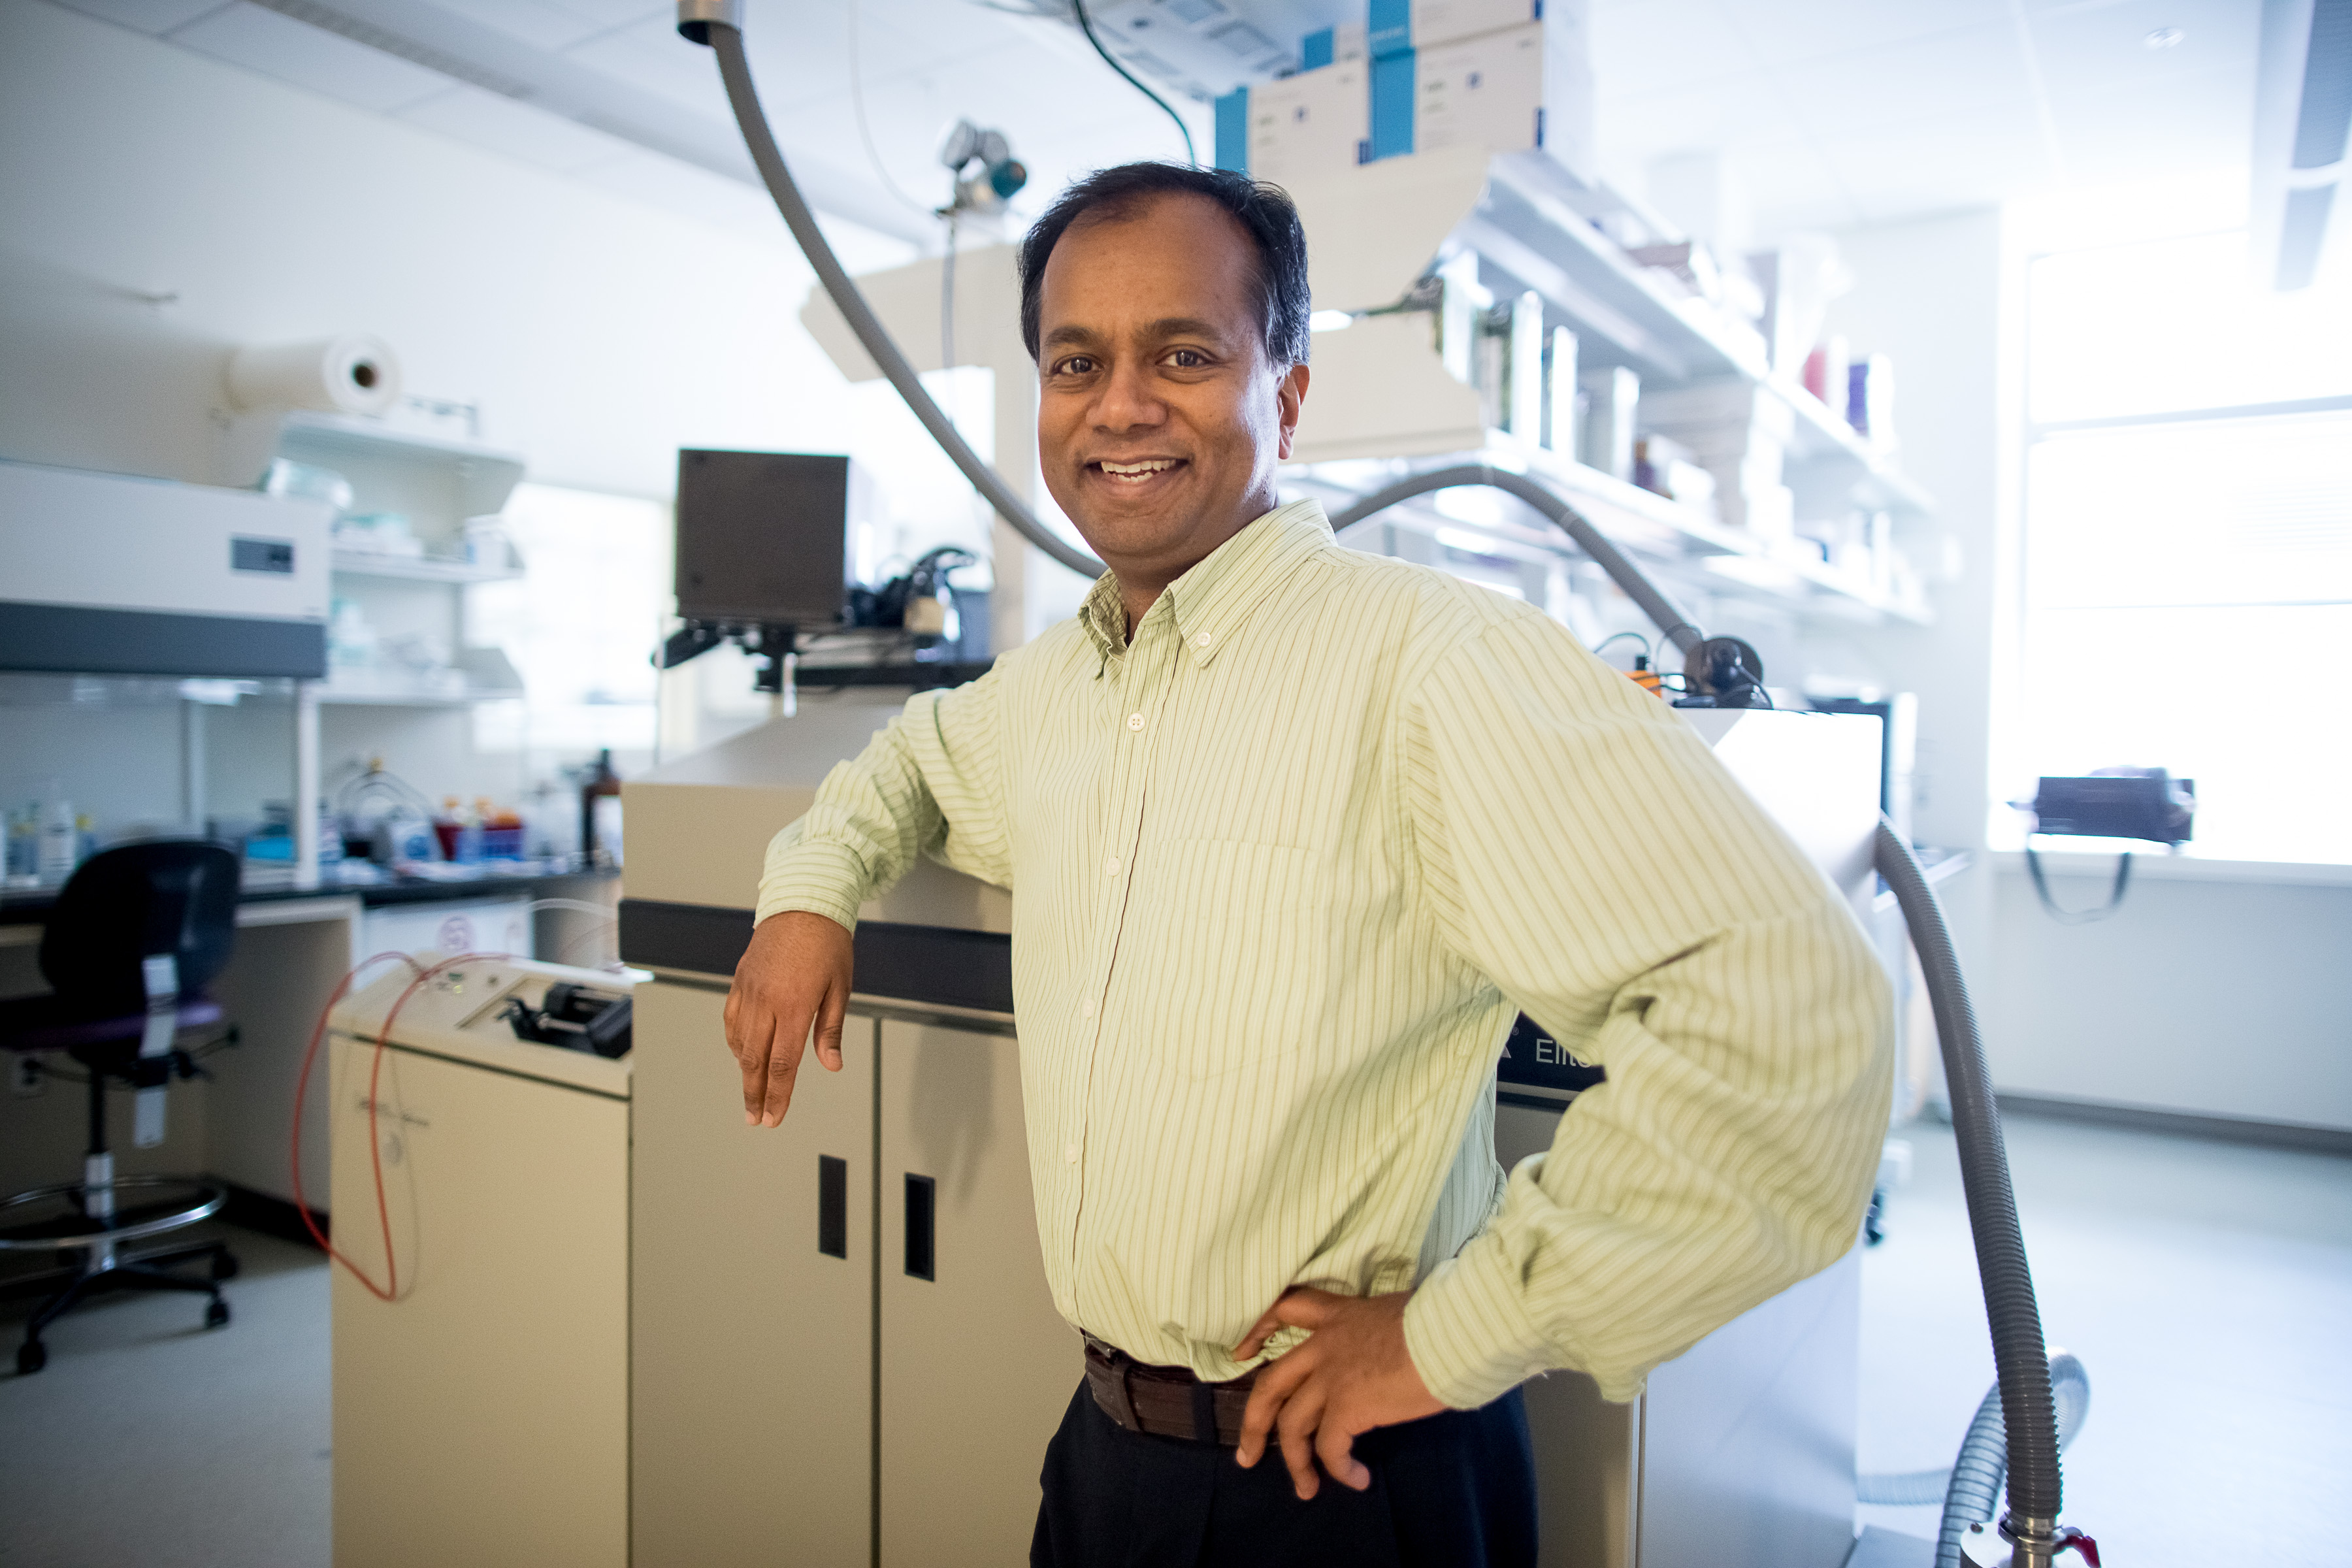 3 Questions: Ram Sasisekharan on hastening vaccines and treatments